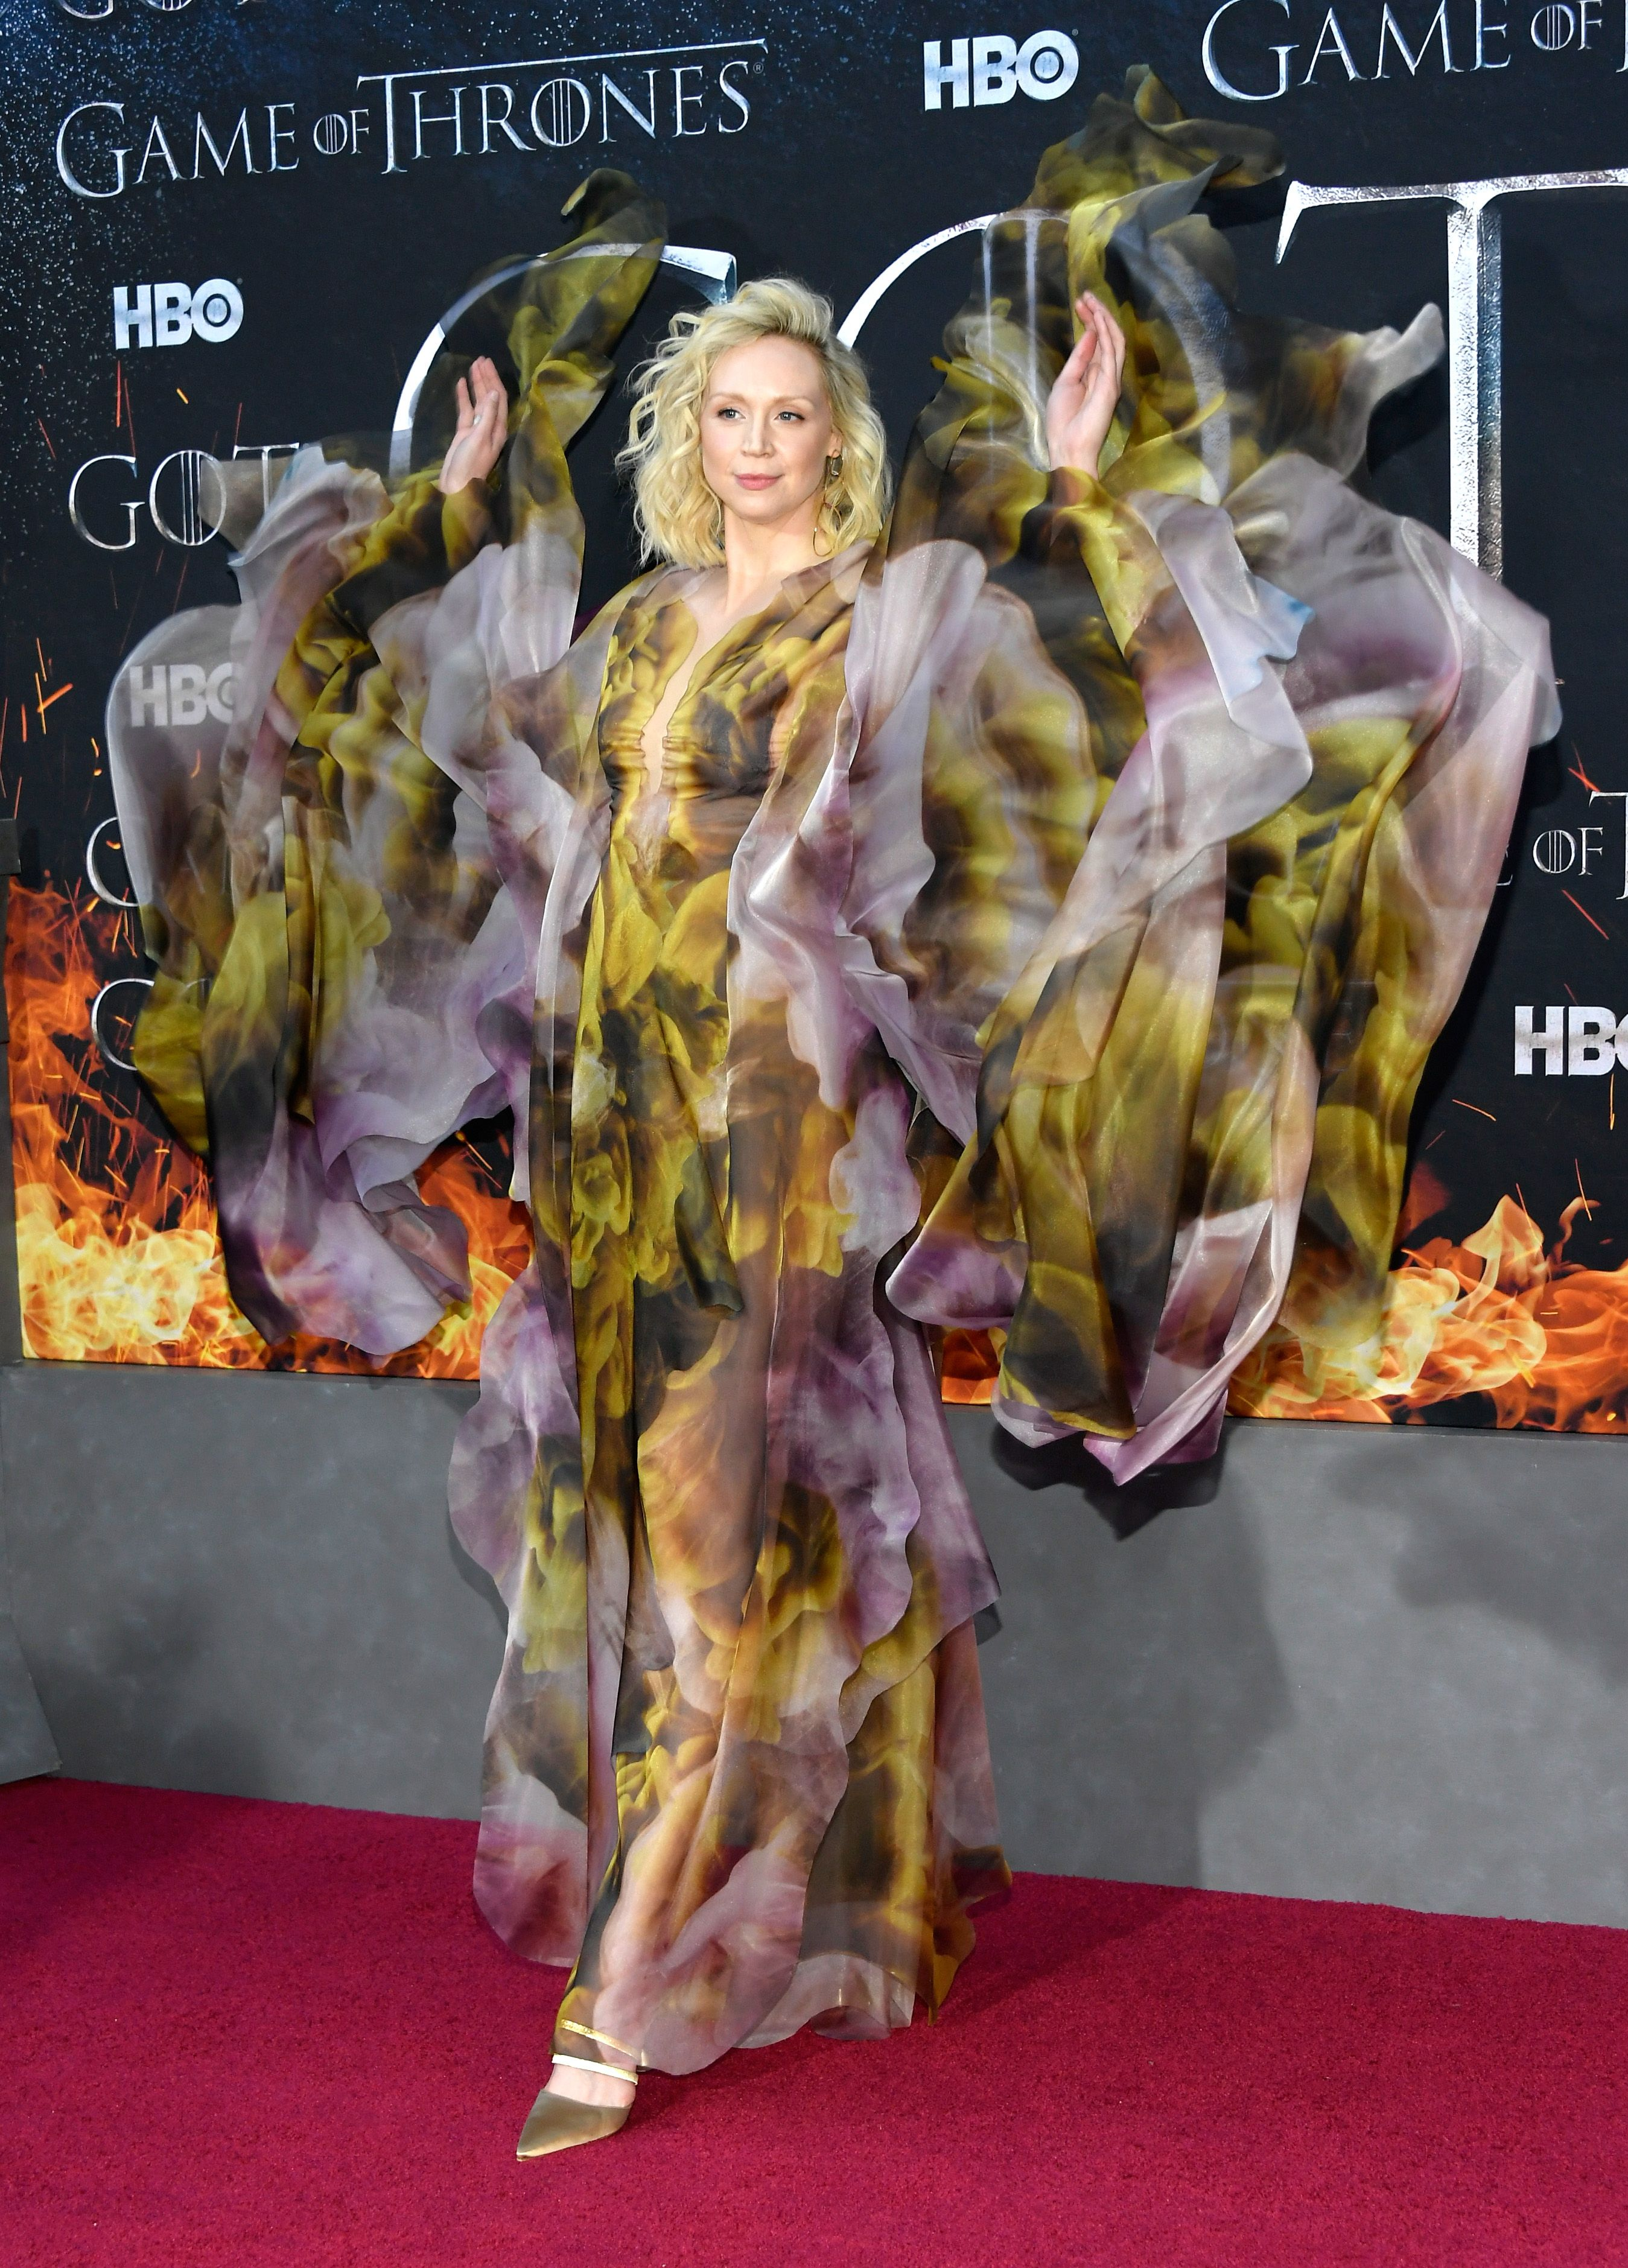 a457971c8a2 Gwendoline Christie Reigns Supreme at the Game of Thrones Season Finale  Premiere